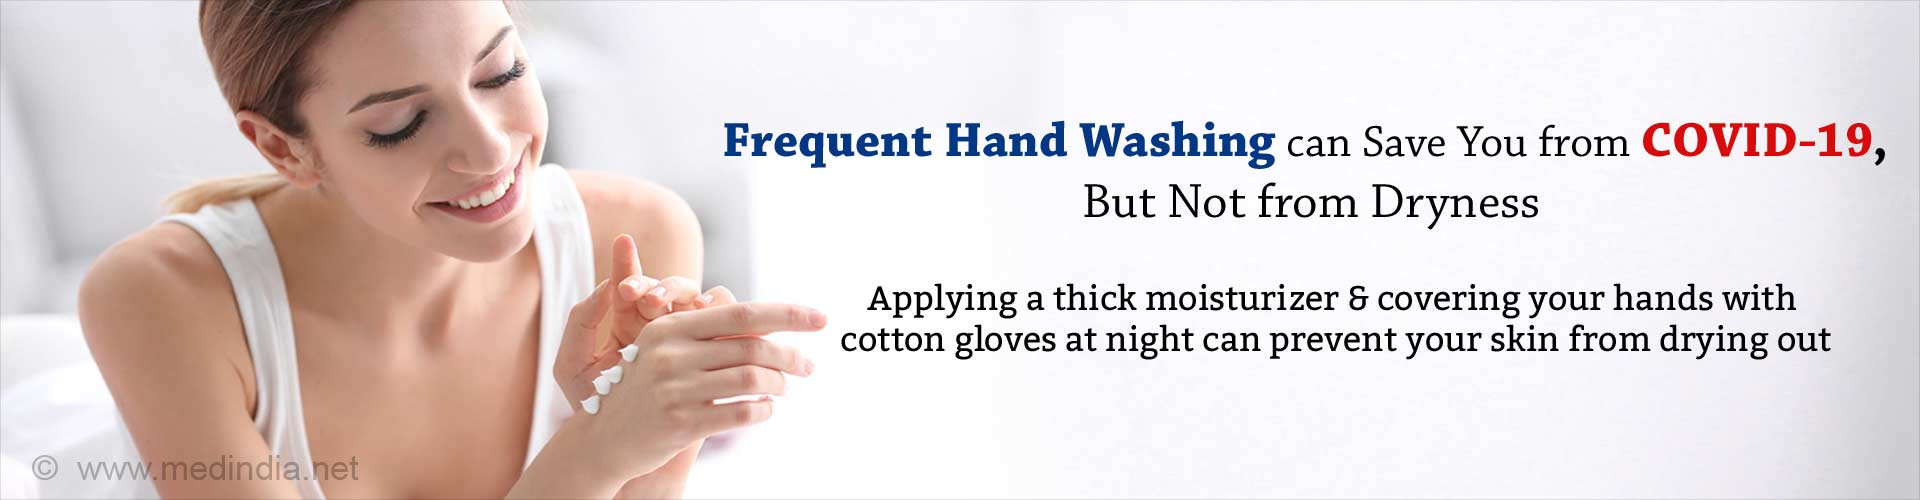 Frequent hand washing can save you from covid-19, but not from dryness. Applying a thick moisturizer and covering your hands with cotton gloves at night can prevent your skin from drying out.